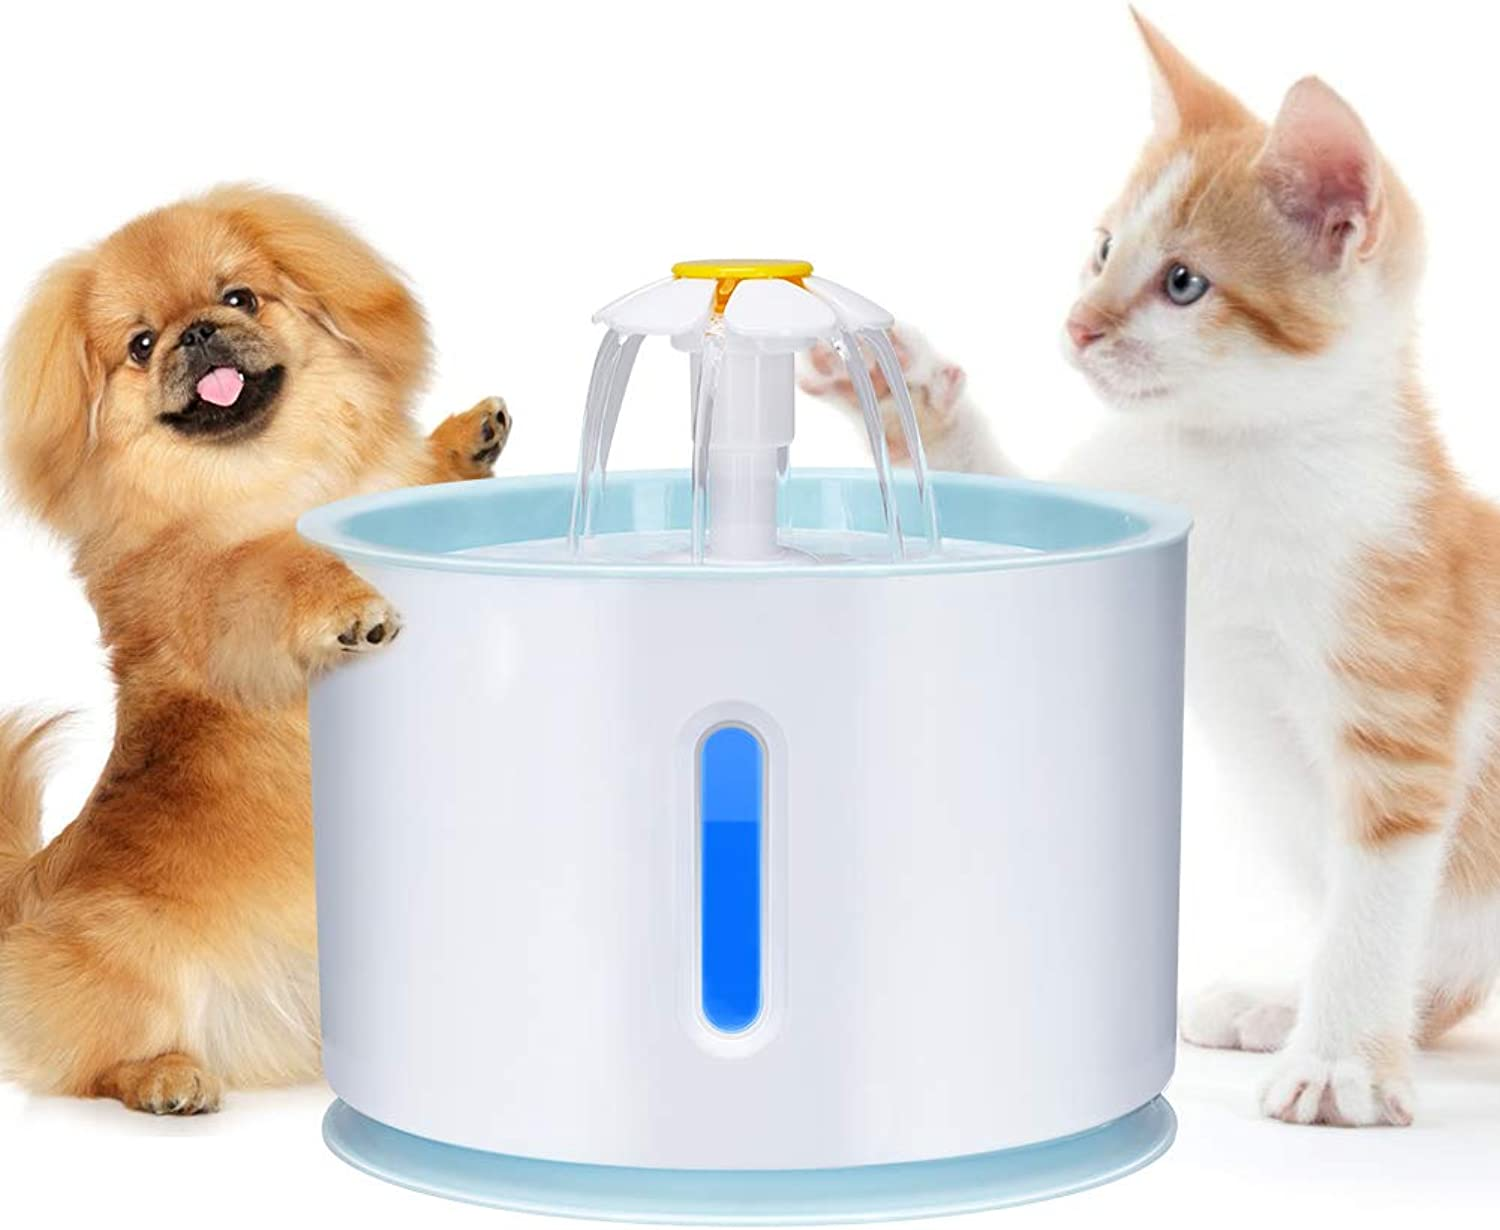 Haofy Fountain for Cats and Dogs Flowers with Filter and LED Lights, Silent Water Pump with 2.4L Filter, Water Pump, UltraQuiet Water Pump